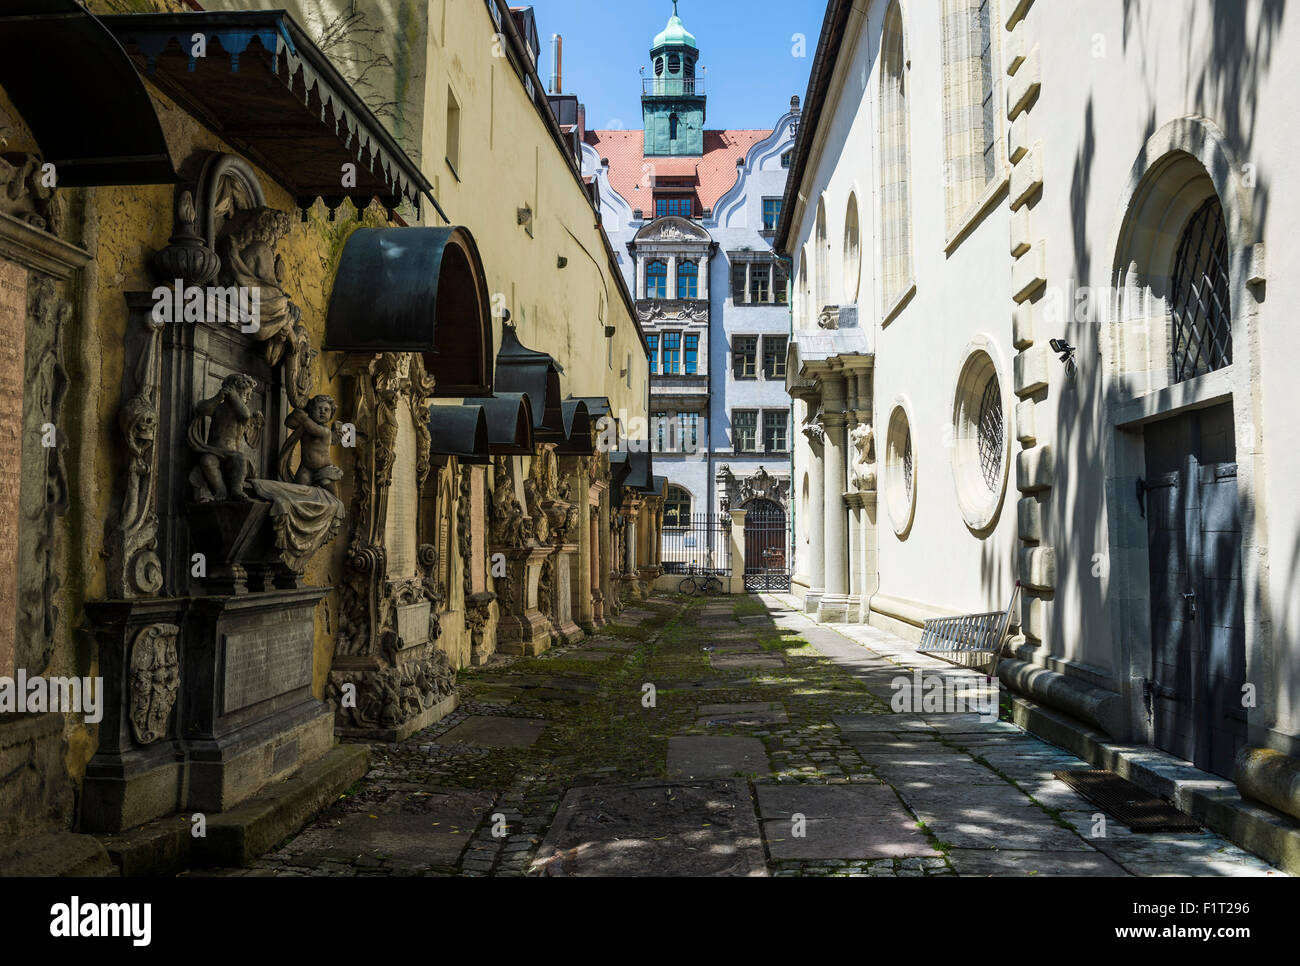 Trinity Church's cemetery grave markers, Church of the Holy Trinity, Regensburg, UNESCO World Heritage Site, - Stock Image